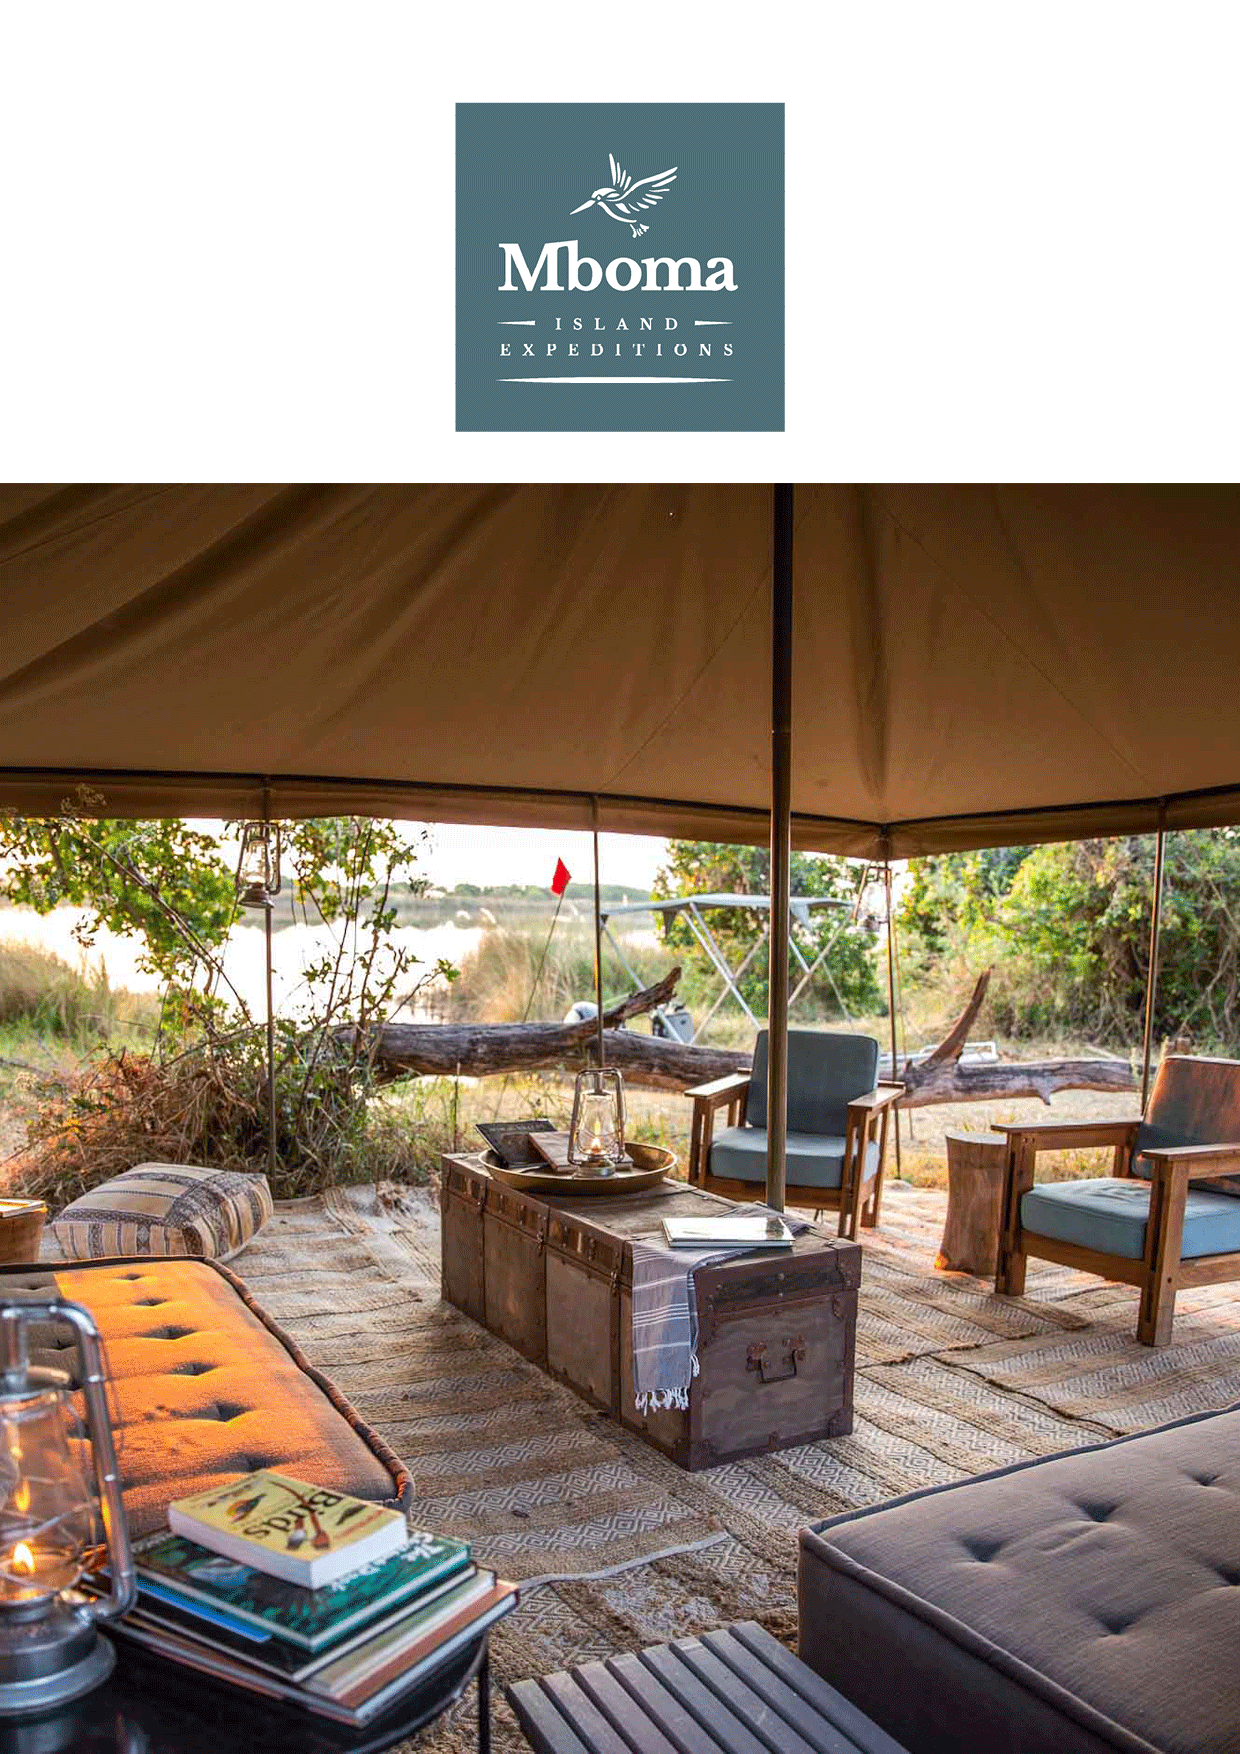 Mboma Island Expeditions Wetu Online Brochure